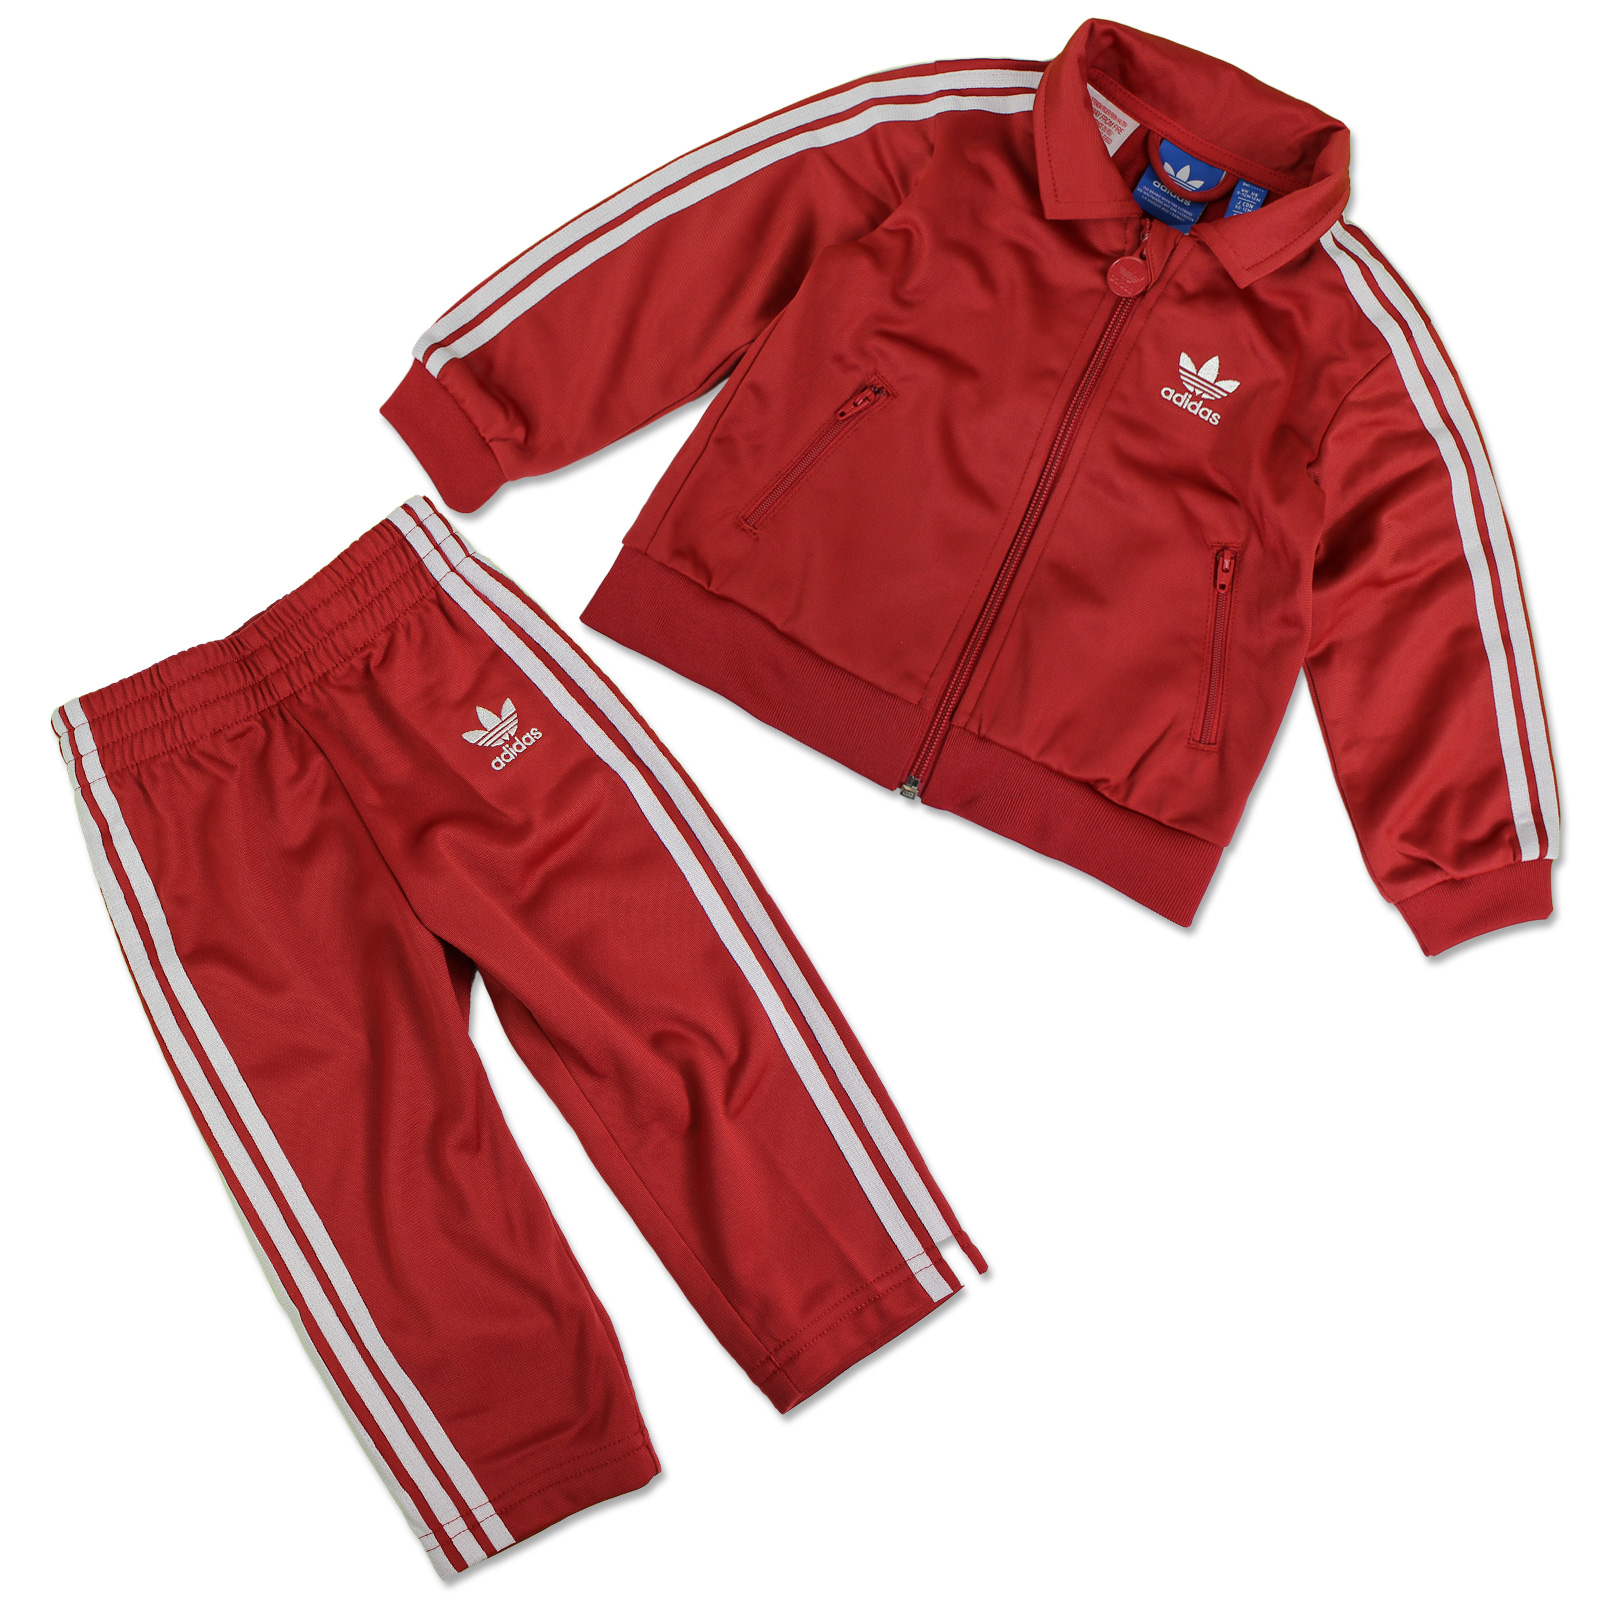 Details zu ADIDAS ORIGINALS FIREBIRD KINDER TRAININGSANZUG SPORT ANZUG RAW RED ROT